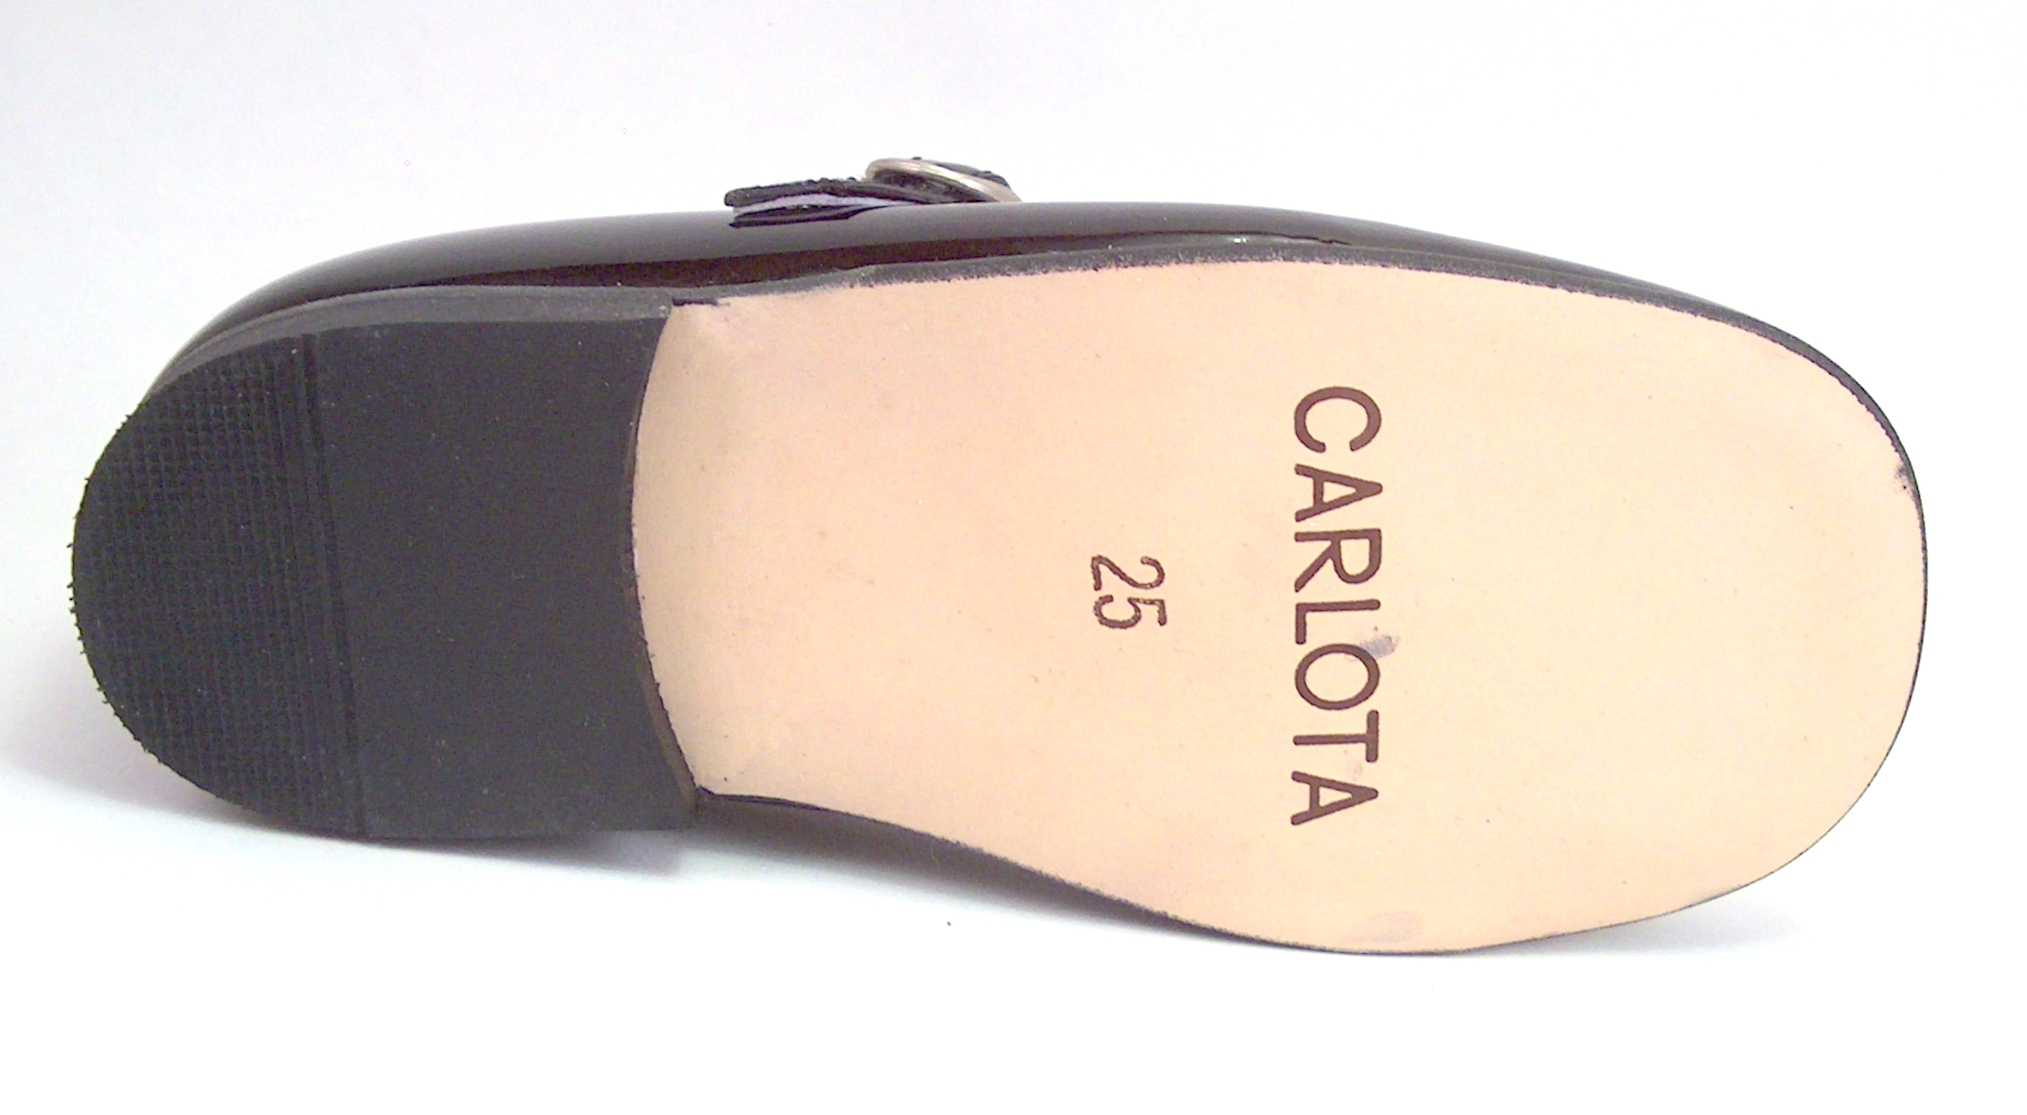 B-7211 - Black Patent Mary Janes - EU 26 US 9